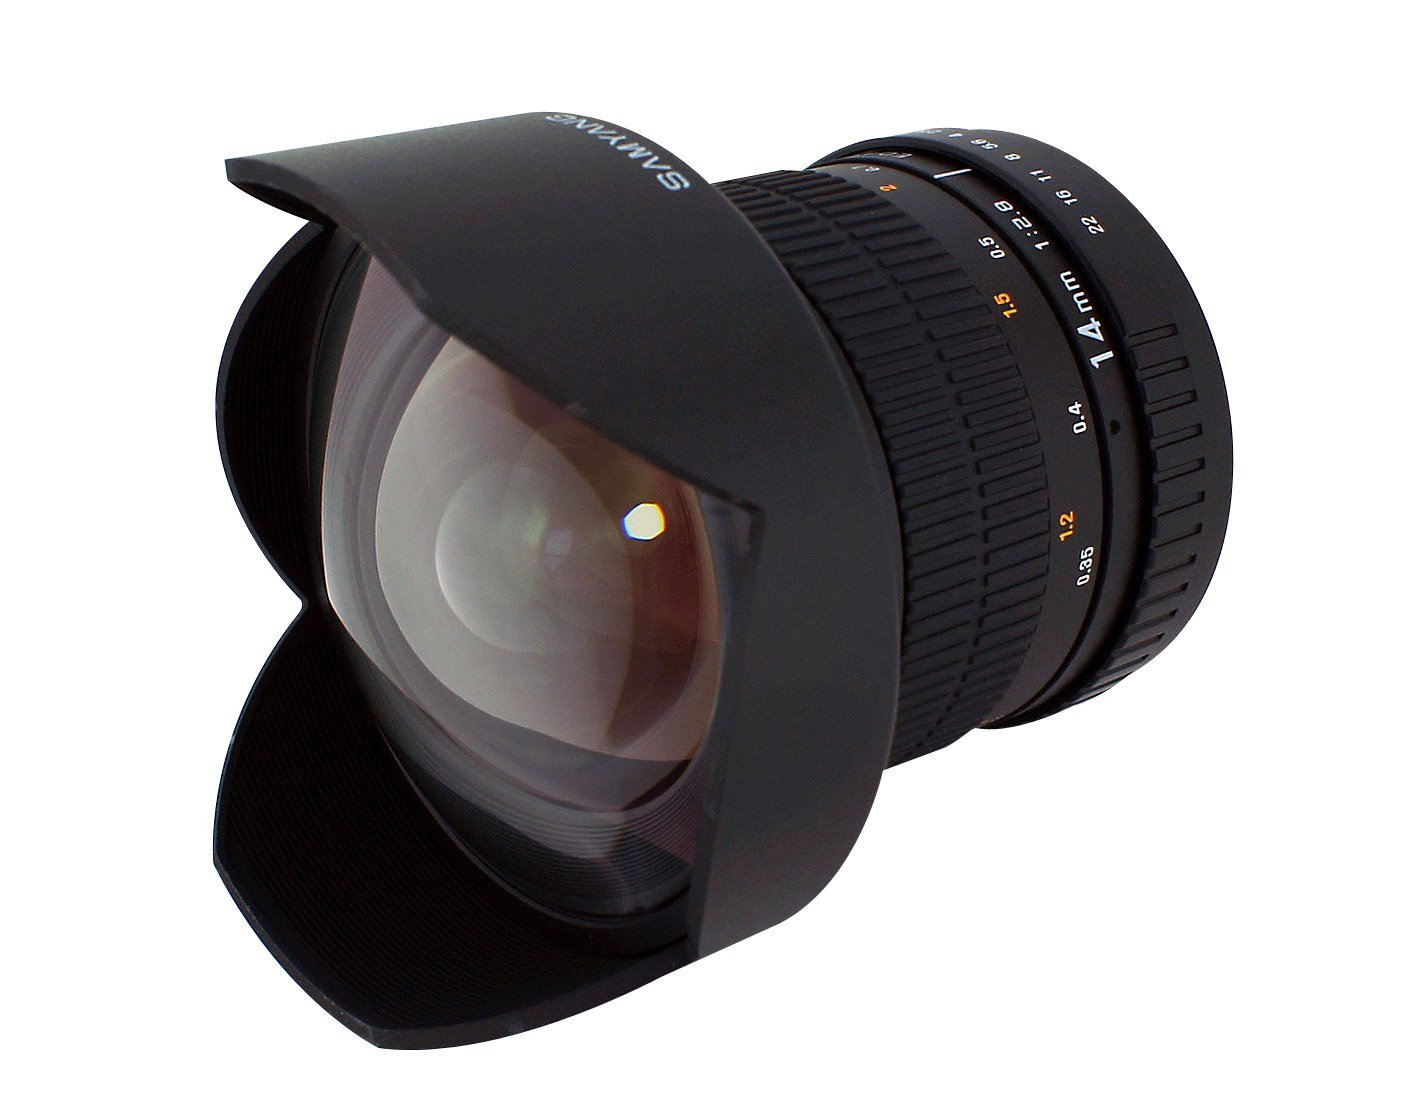 Samyang SY14M-C 14mm F2.8 Ultra Wide Fixed Angle Lens